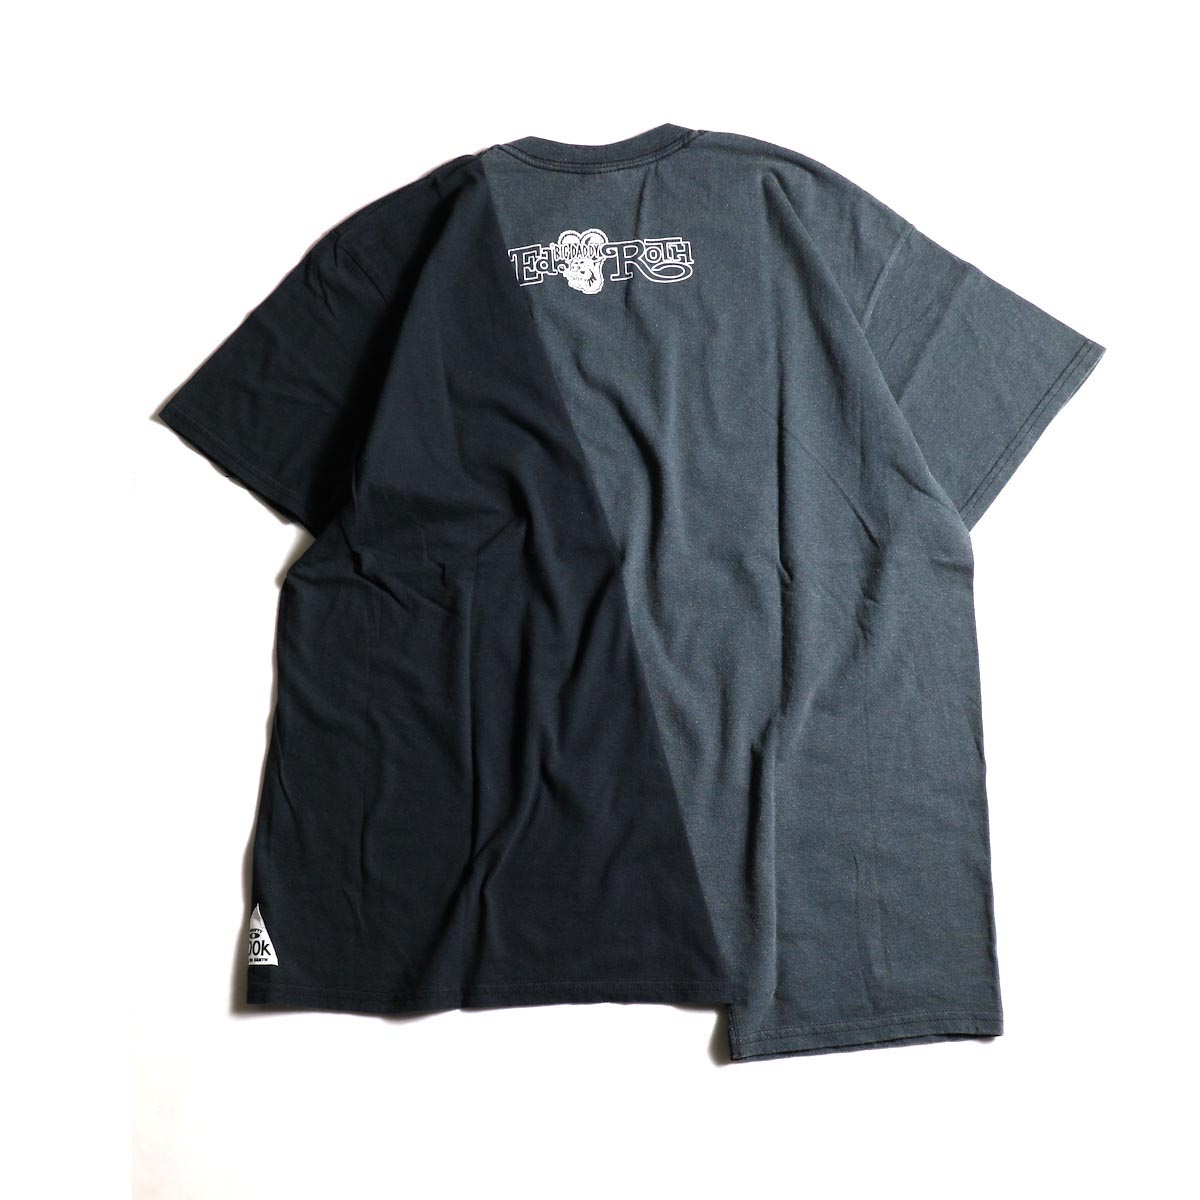 """THRIFTY LOOK / Thrifty Twins """"Black"""" Tee (C)背面"""